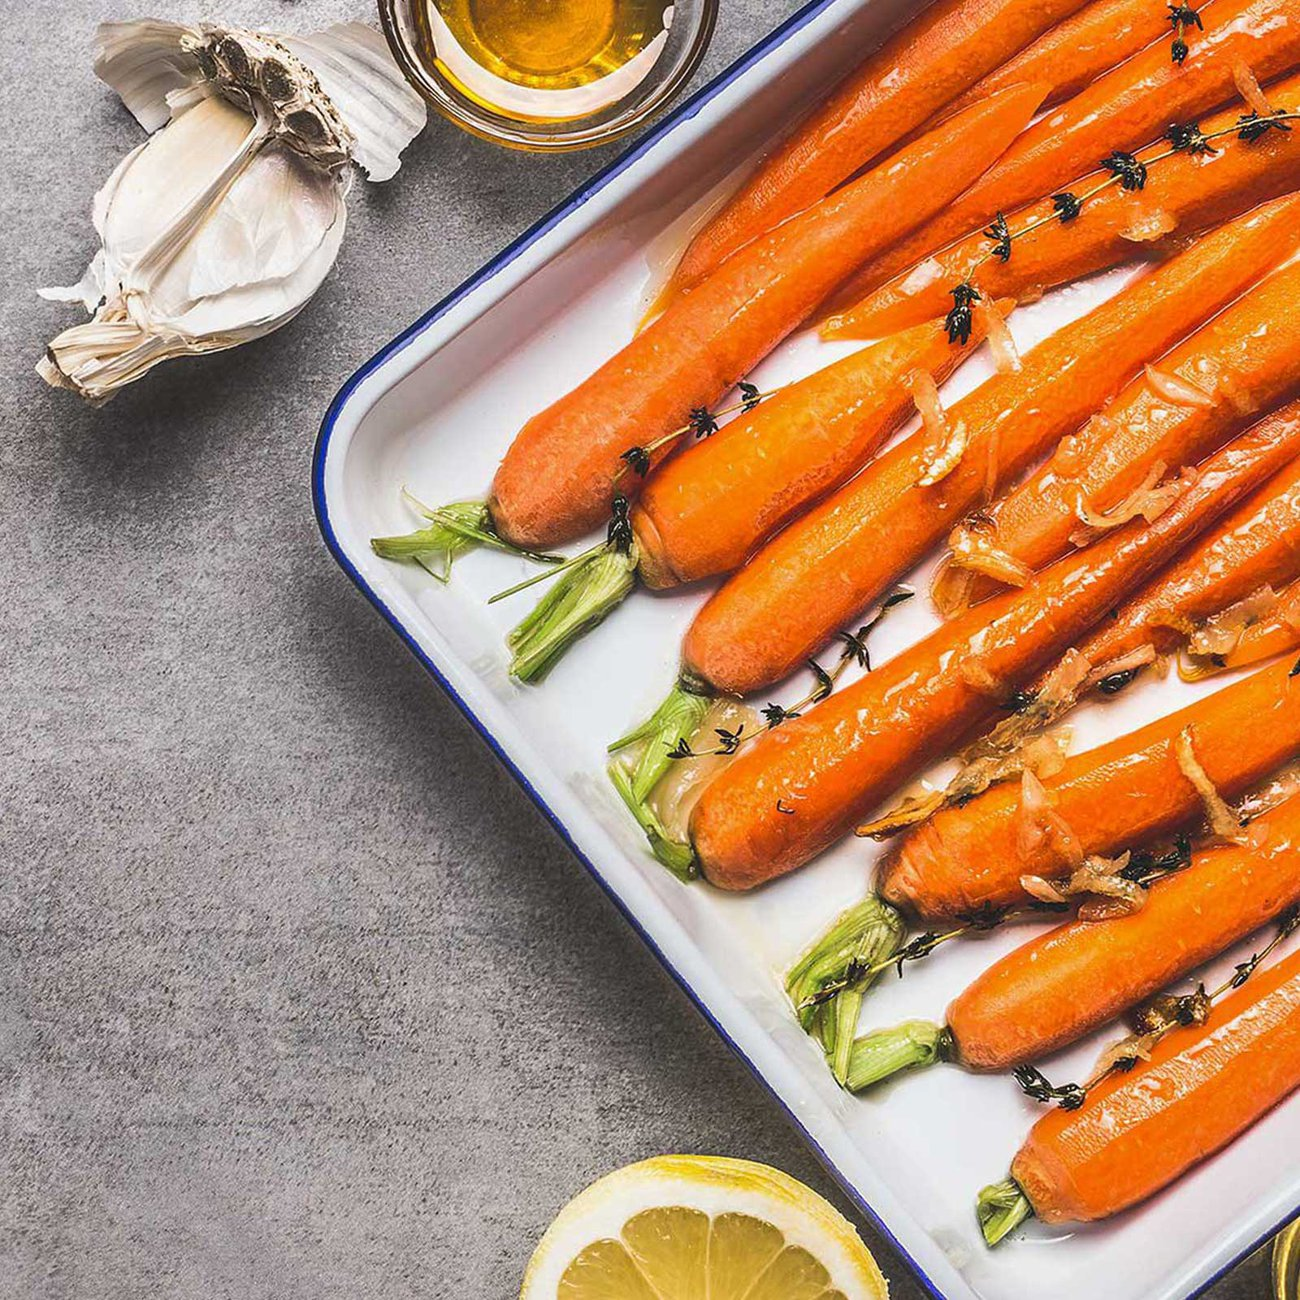 A drizzle of Honey on carrots before roasting for a sweeter flavour